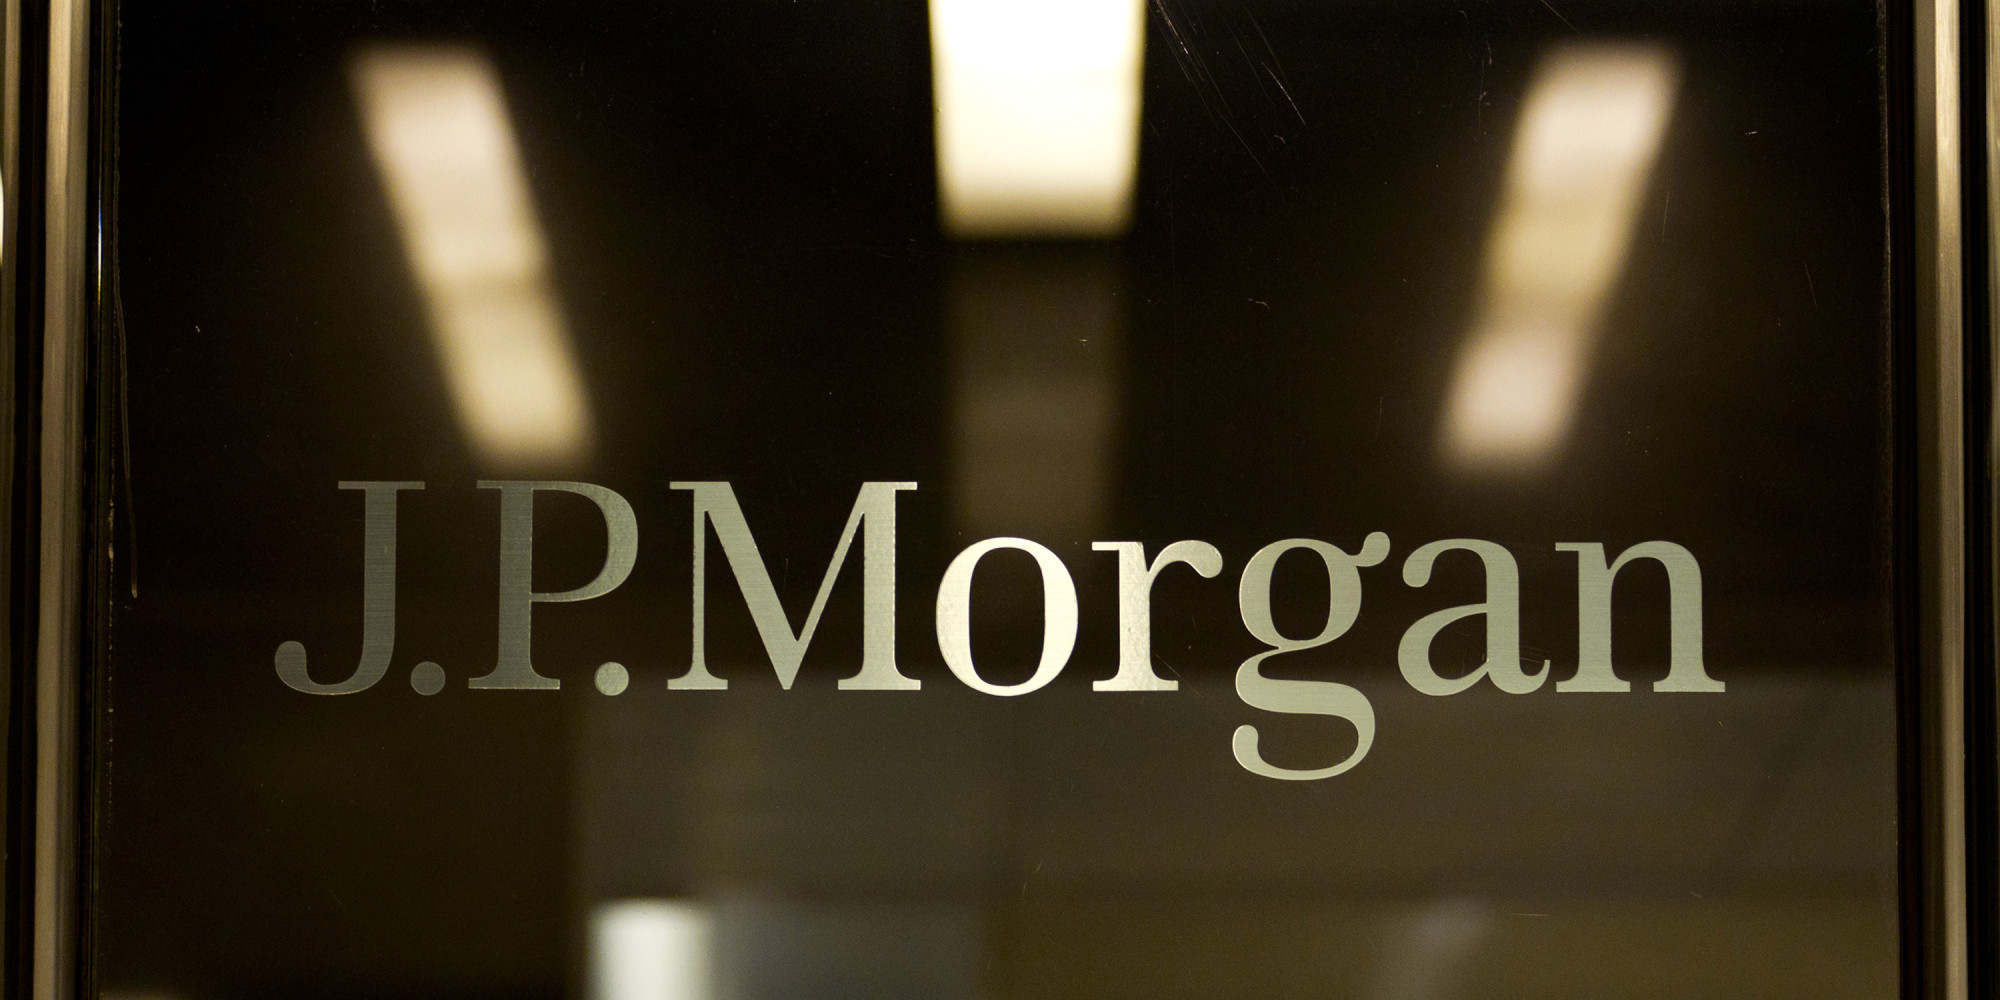 jp morgan chase core competencies Jpmorgan chase & co launched its global service center in manila in 2005 and in cebu in 2010 core competencies: knowledge of microsoft word, excel, access.